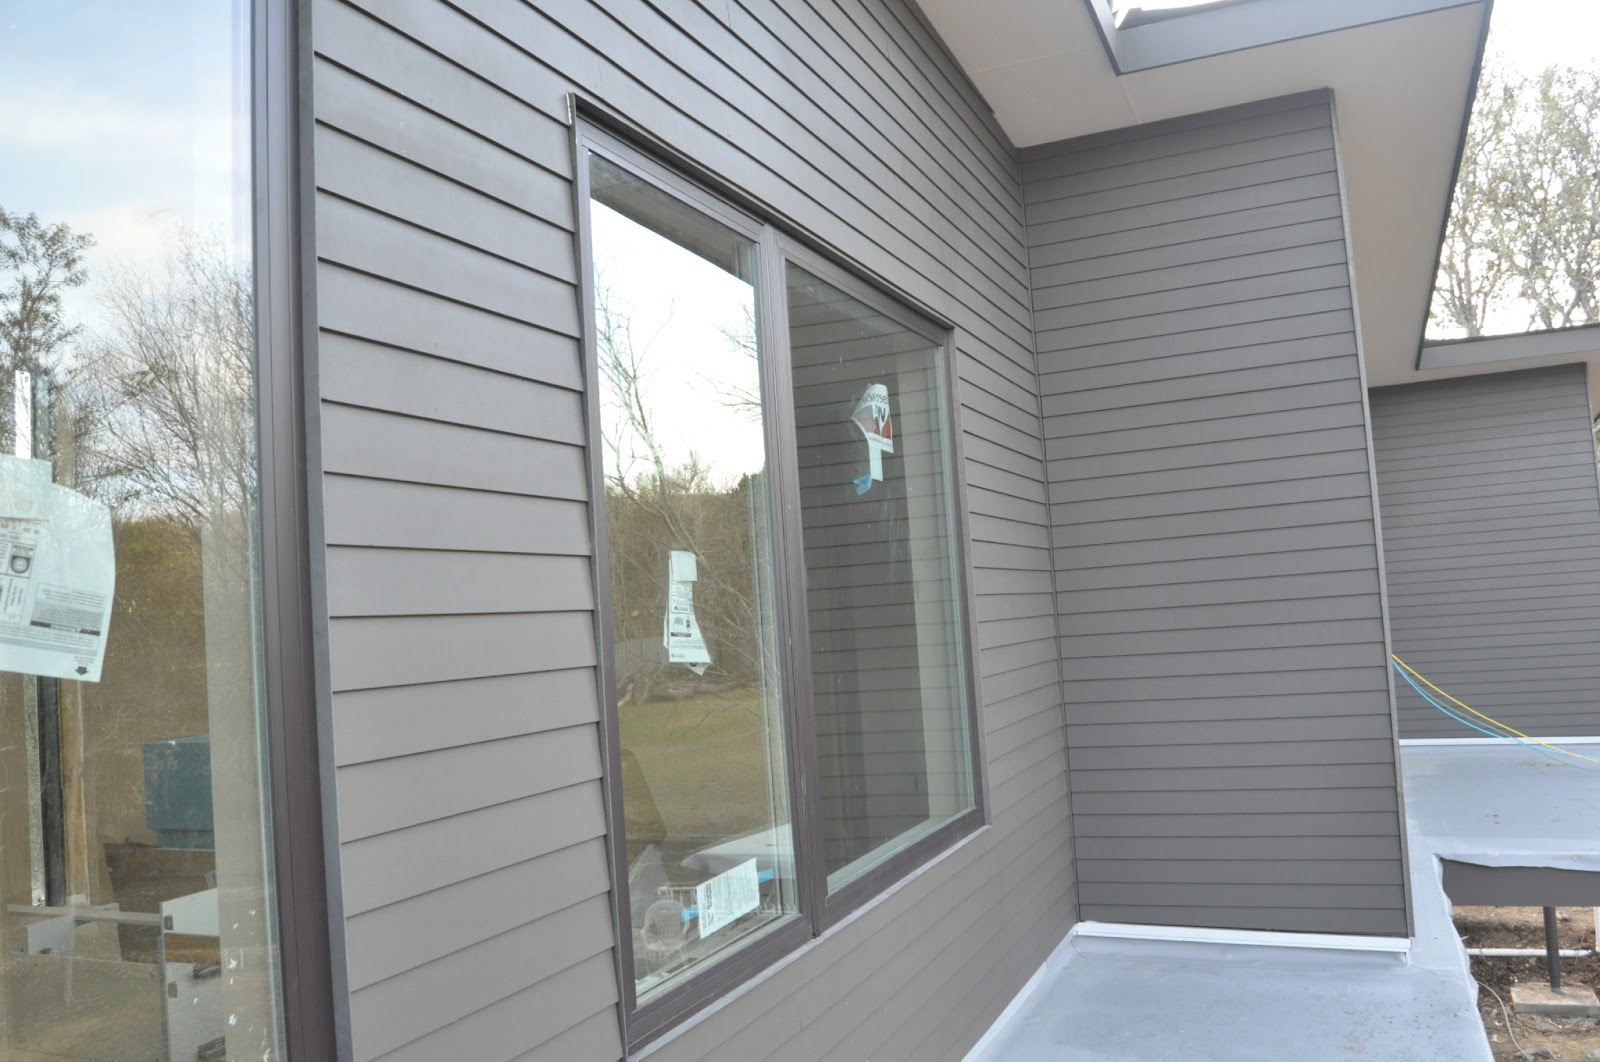 Matt risinger blog matt risinger blog for Contemporary exterior window trim